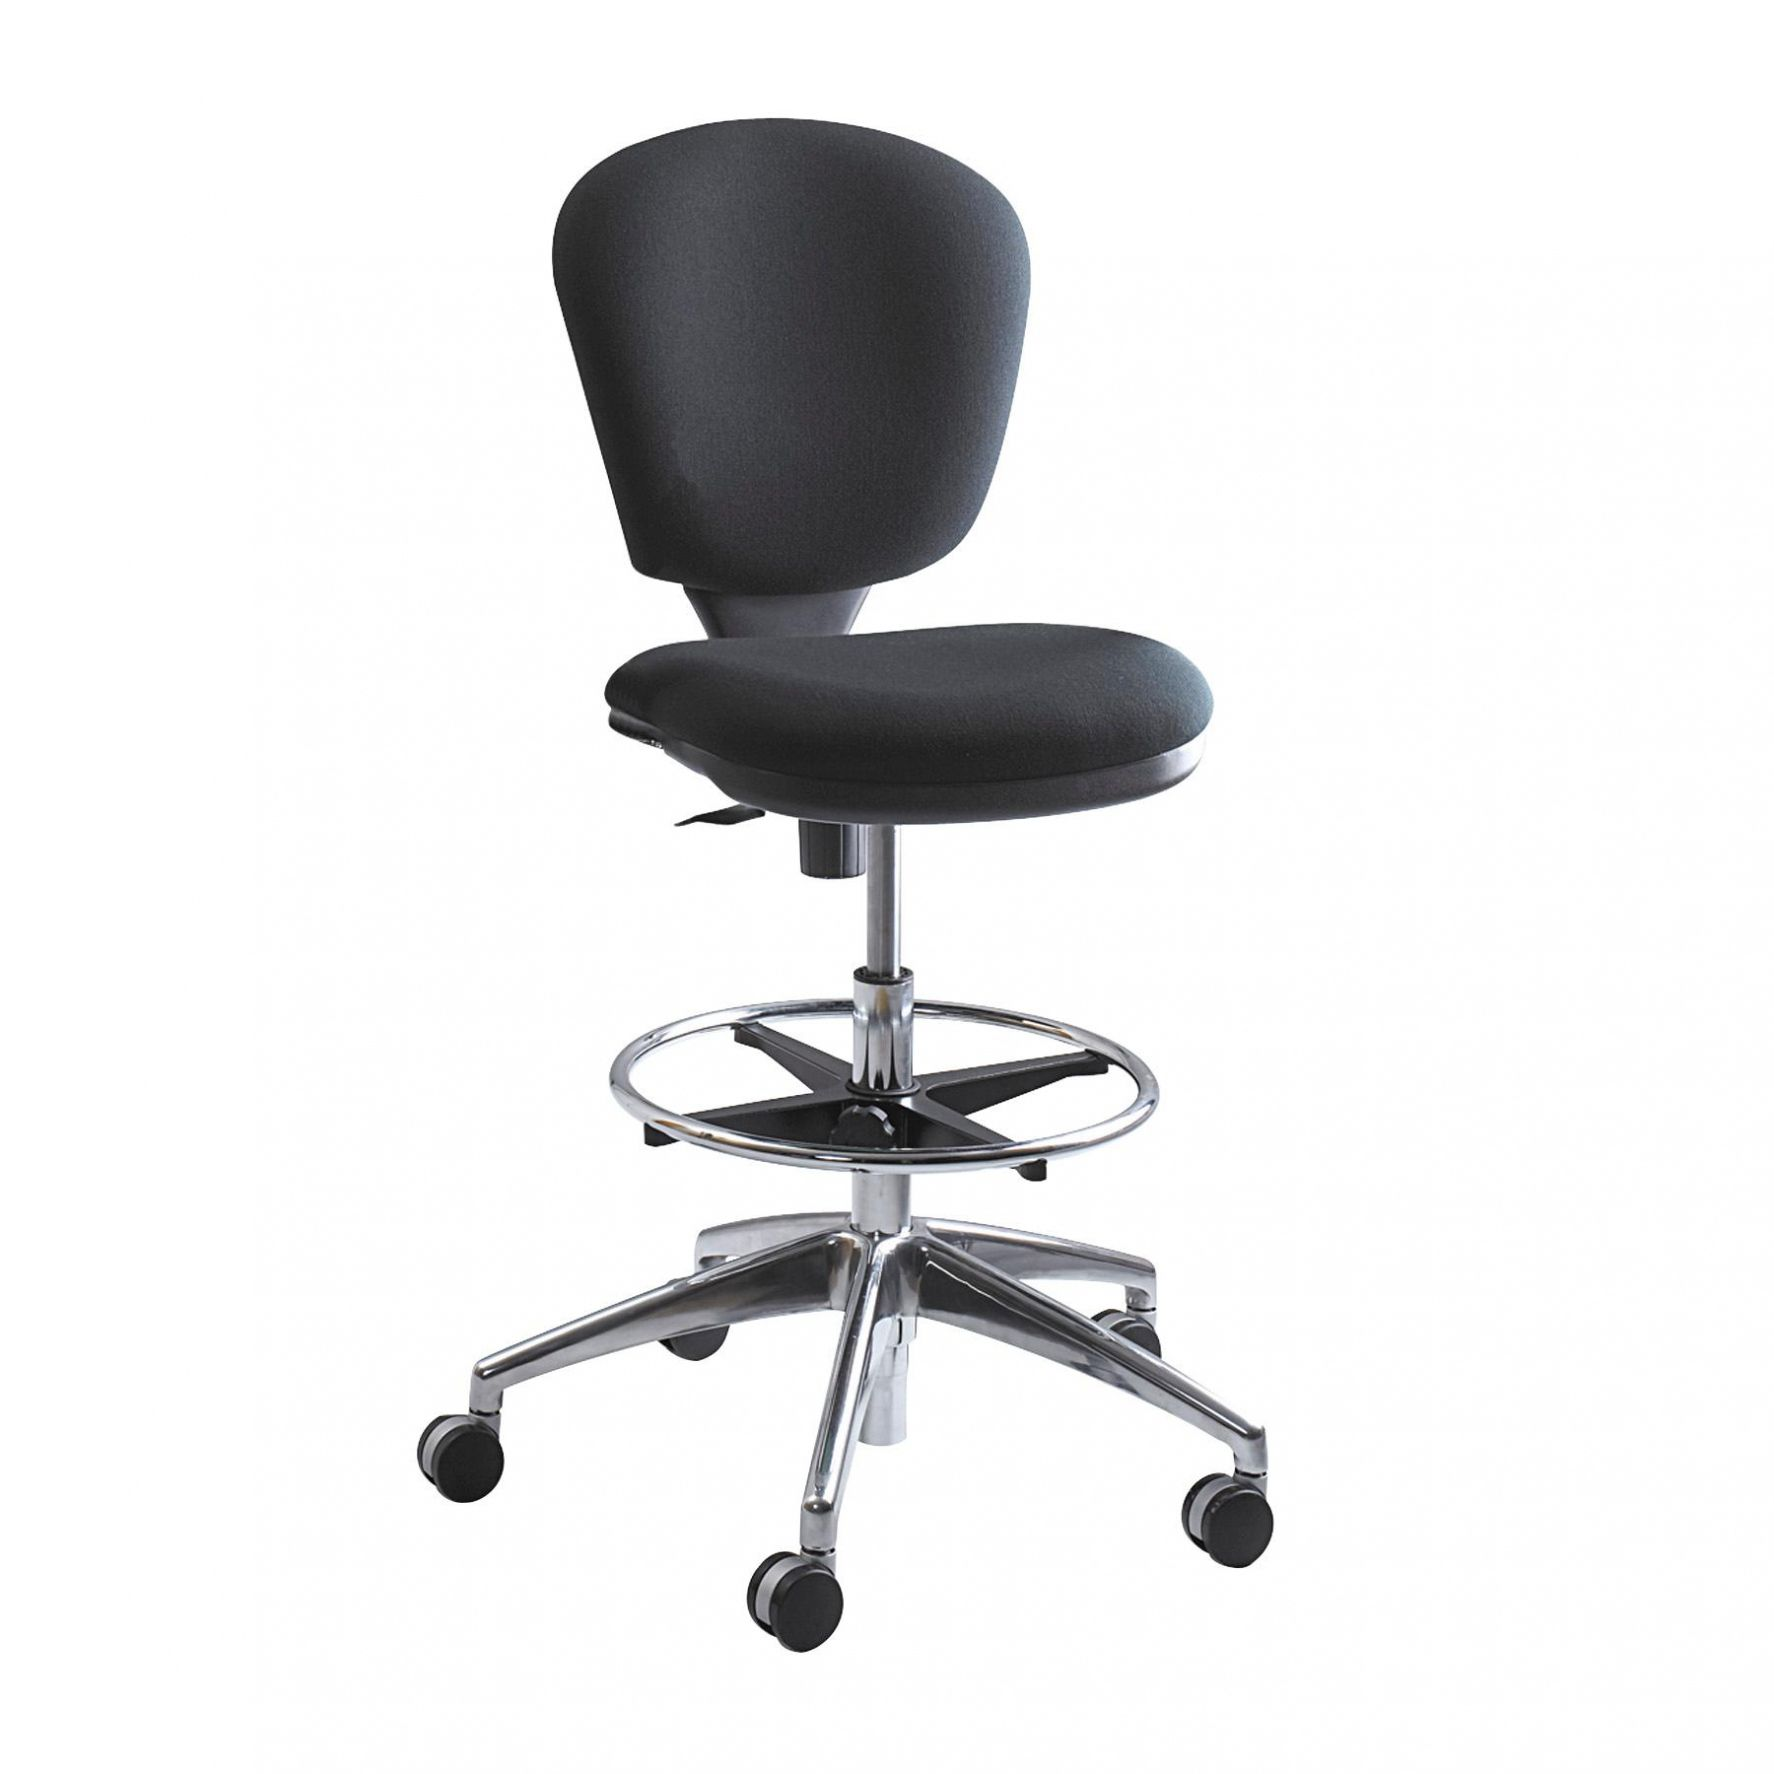 Pin By Neby On Modern Home Interior Ideas High Office Chair Best